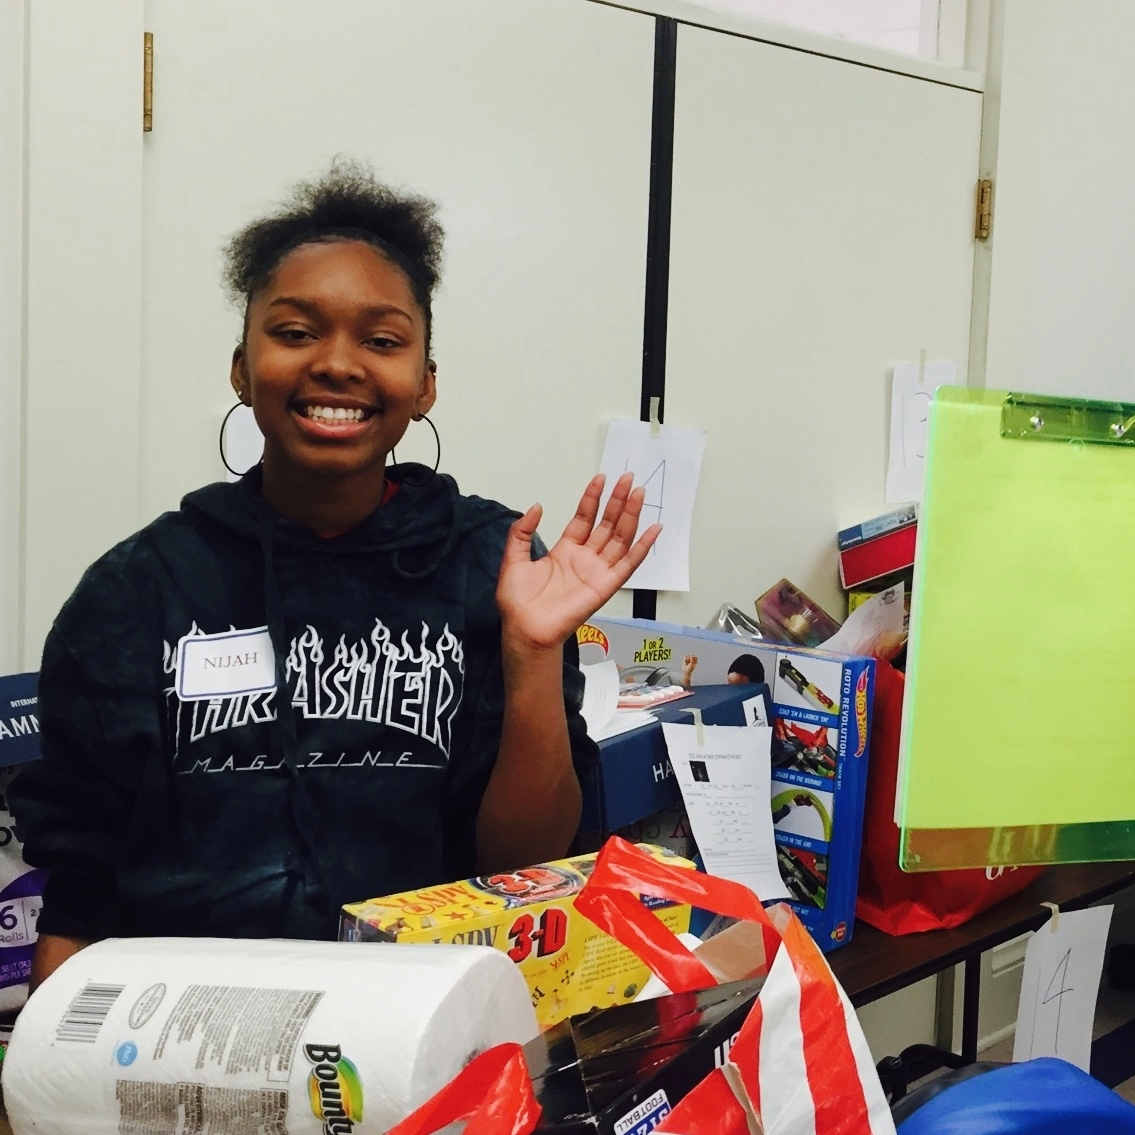 Nijah volunteering with Saint Vincent's Day Home to put together Christmas packages for families.